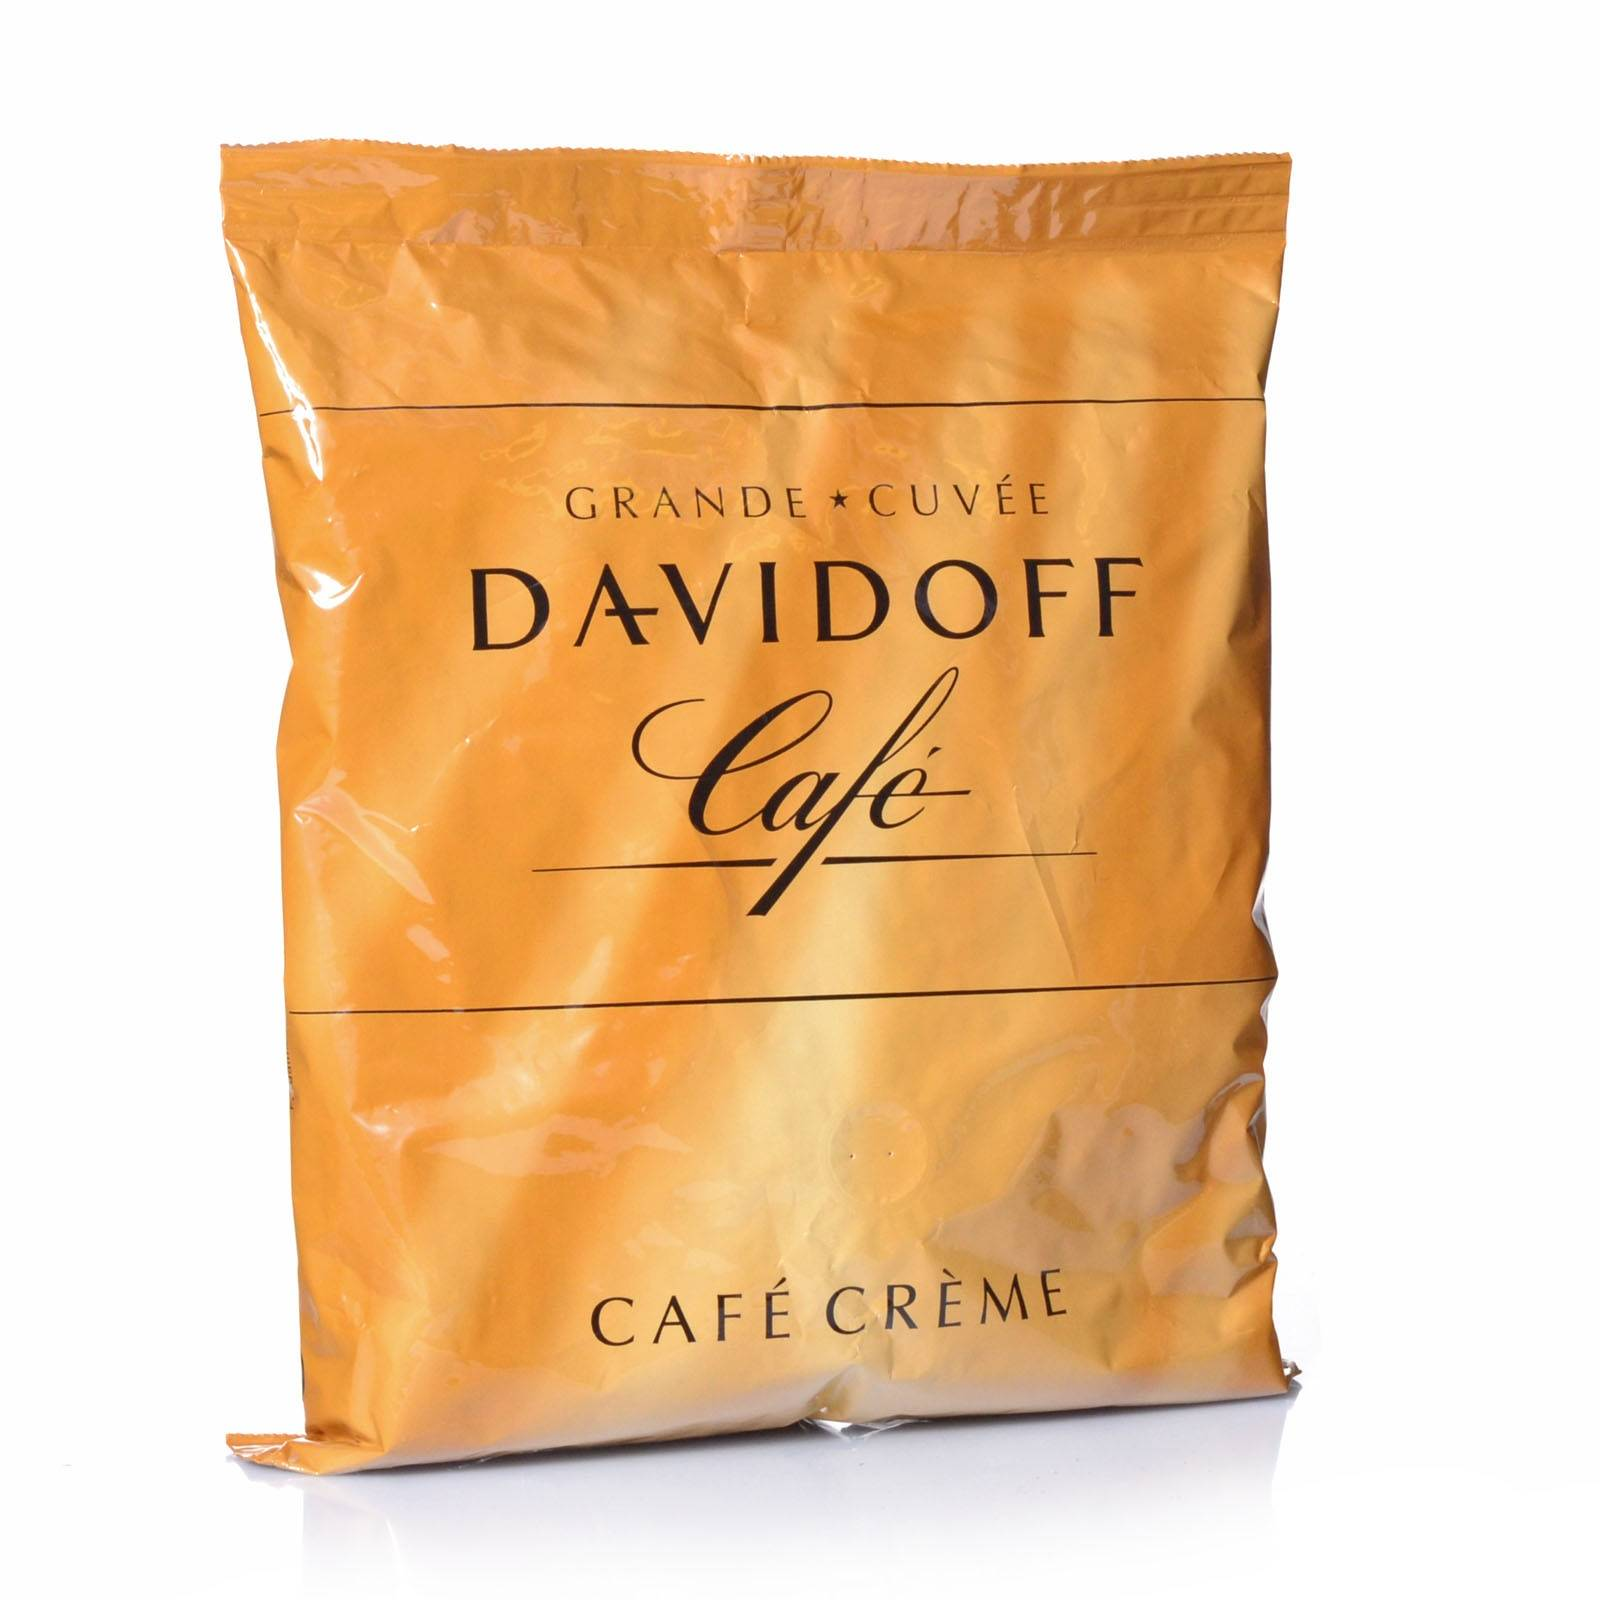 davidoff caf creme 10 x 500g kaffee ganze bohnen kaffeebohnen ebay. Black Bedroom Furniture Sets. Home Design Ideas